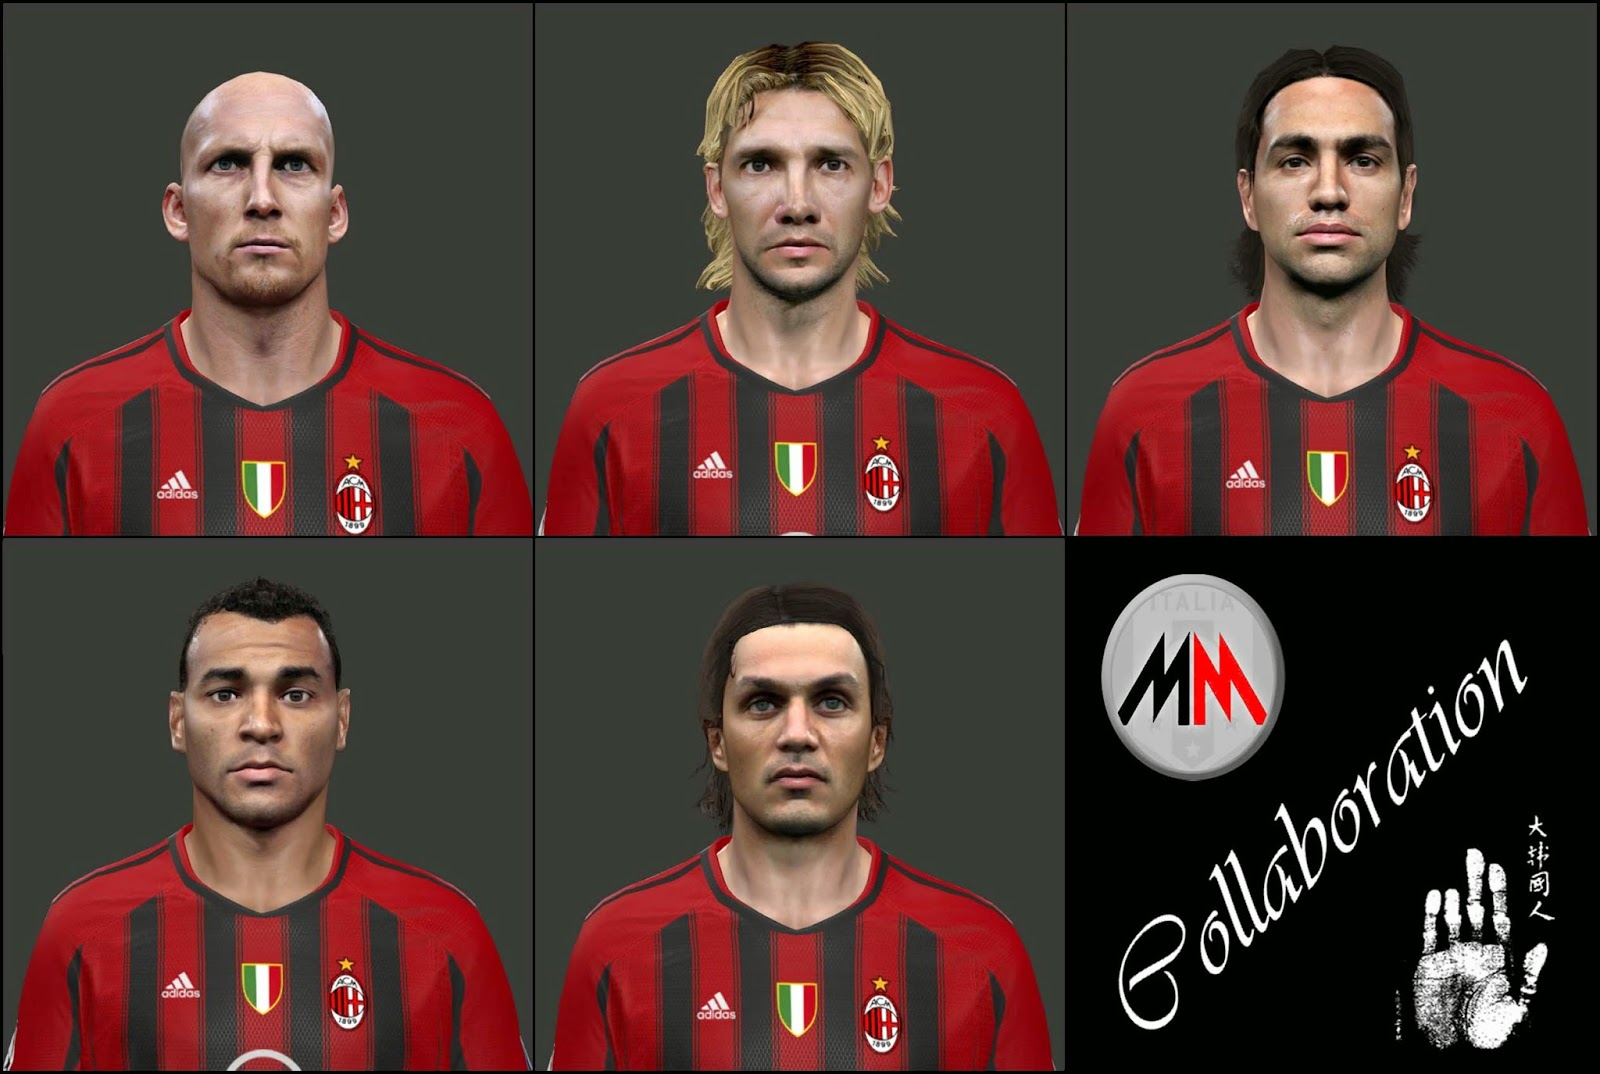 PES 2014 Classic milan facepack by Mariomilan & So-Yul